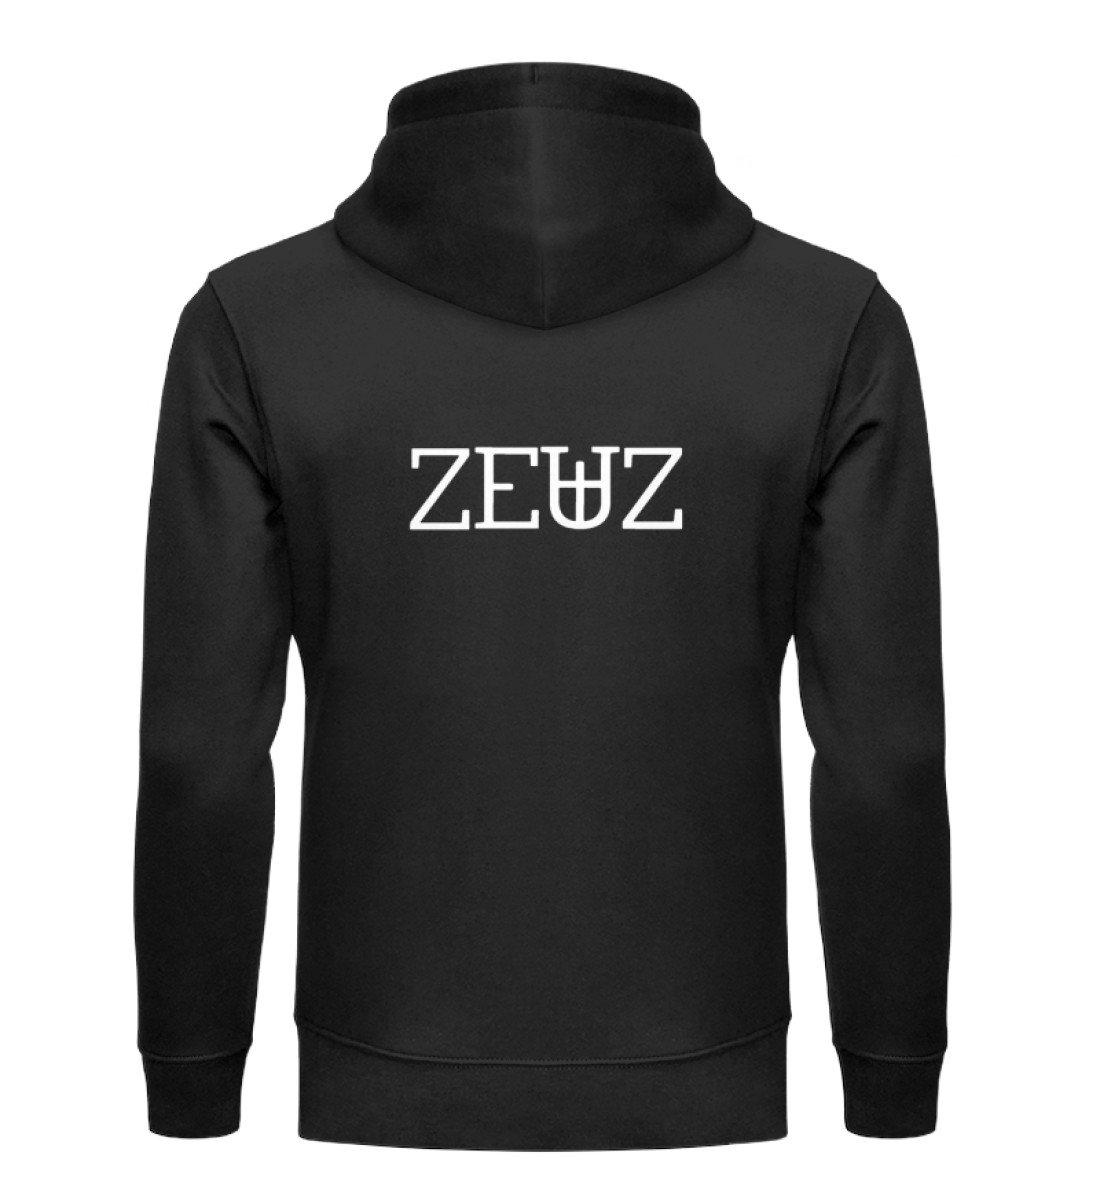 ZEUZ RAVE-ON! ®️ BLACK UNISEX HOODIE - Unisex Organic Hoodie Cruiser Hoodie ST/ST Black / S - Rave On!® der Club & Techno Szene Shop für Coole Junge Mode Streetwear Style & Fashion Outfits + Sexy Festival 420 Stuff